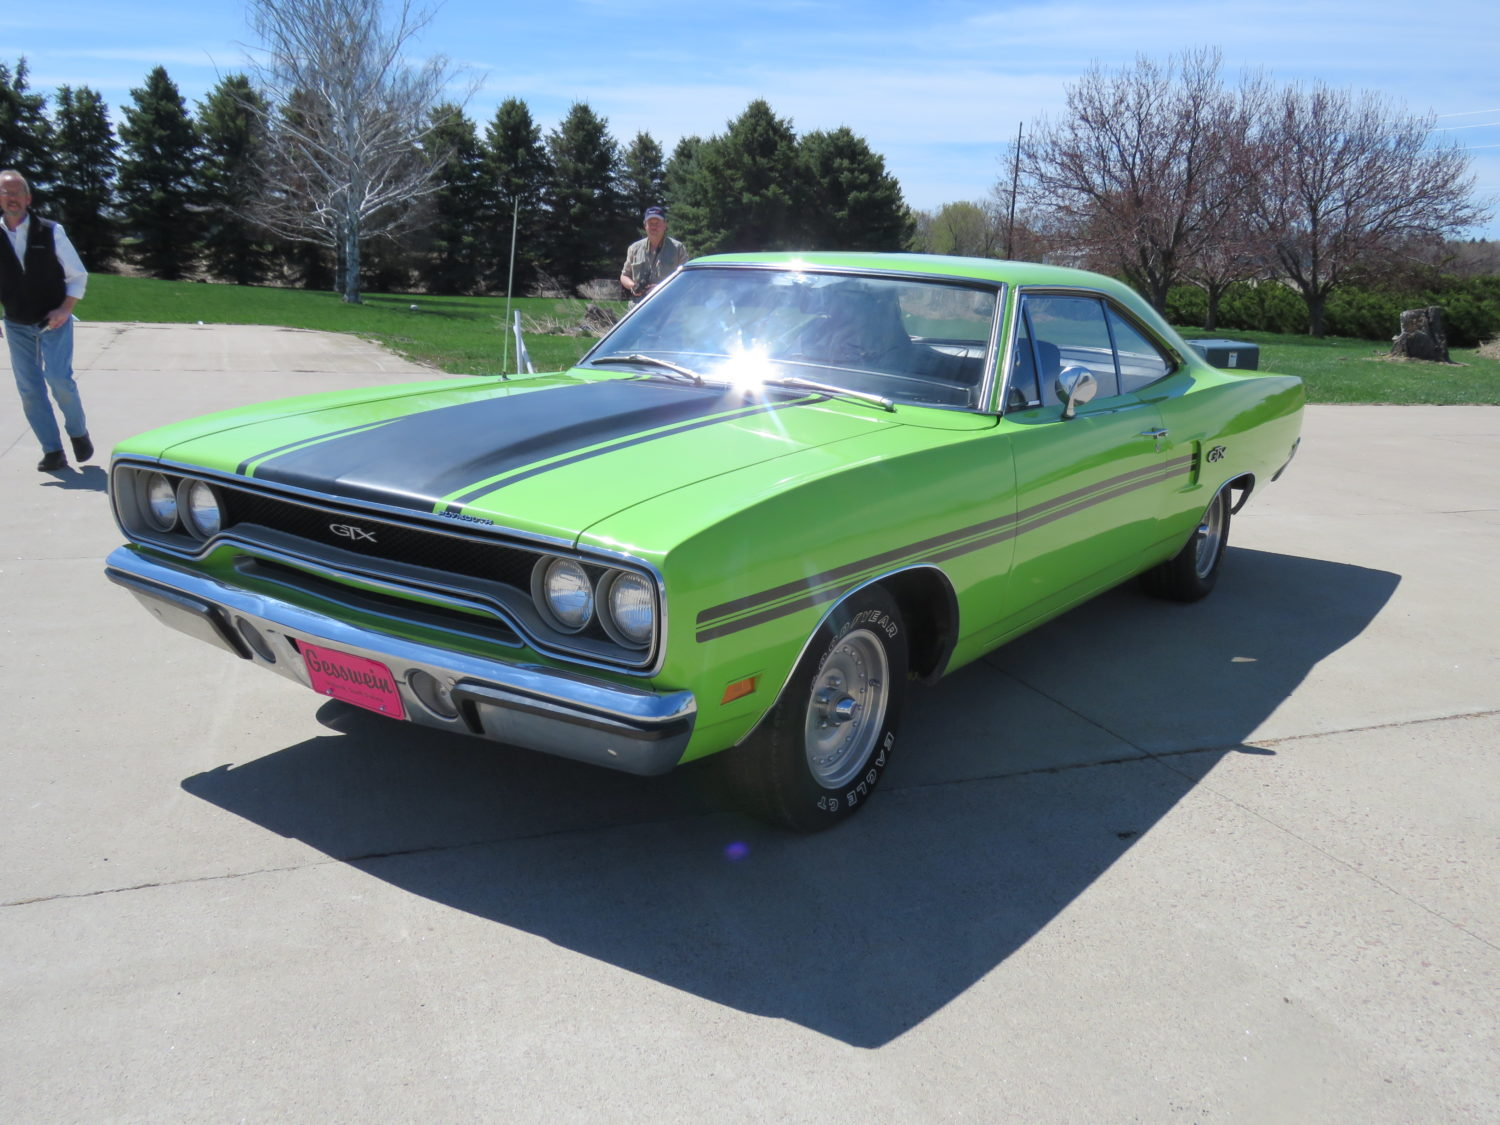 MOPAR Collector Cars- The Jim Gesswein Classic Car Collection Auction- LIVE Onsite Auction with Online Bidding - image 2